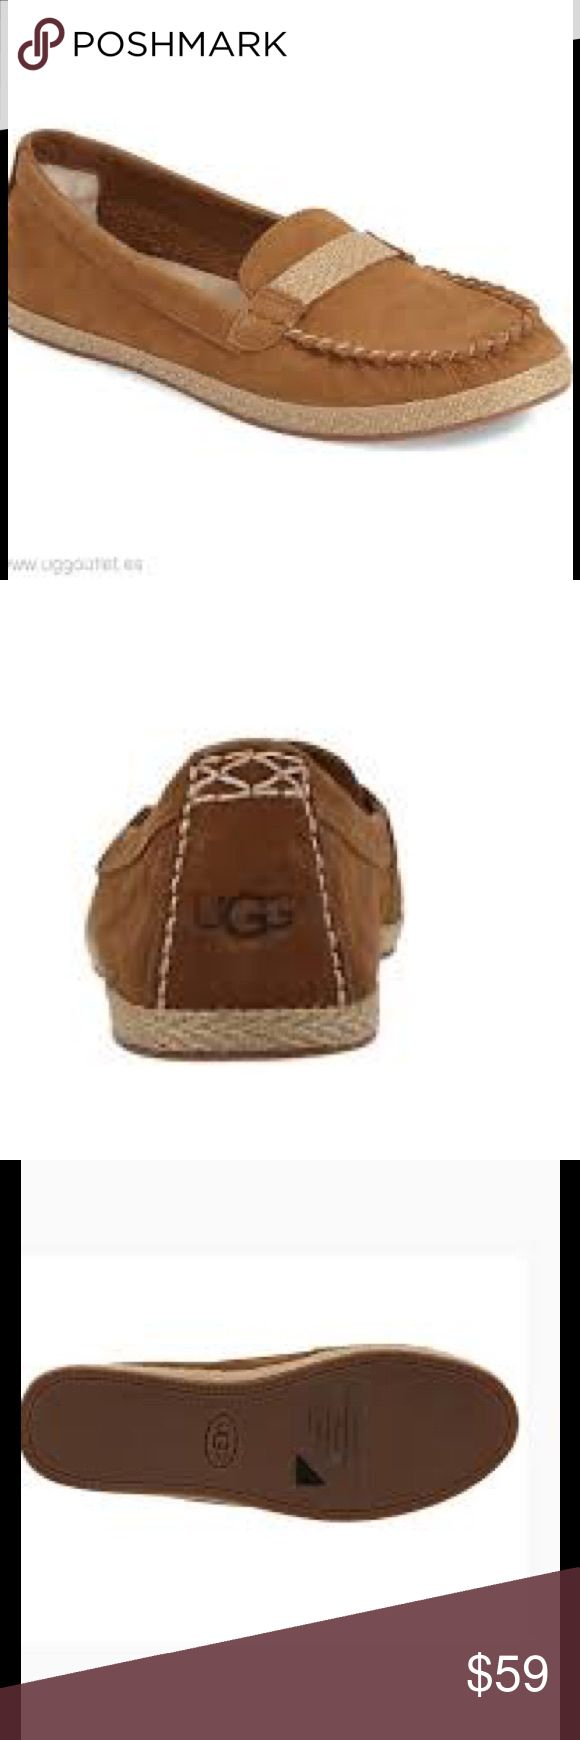 🆕 UGG Rozie nubuck moccasins chestnut Get the beauty and style of espadrilles with a comfort of moccasins, all combined in Rozie shoes by UGG Australia.  Soft nubuck upper  Leather lining  Sheepskin heel counter  Rubber outsole.  Brand new in box.  Smoke free and pet free. UGG Shoes Moccasins